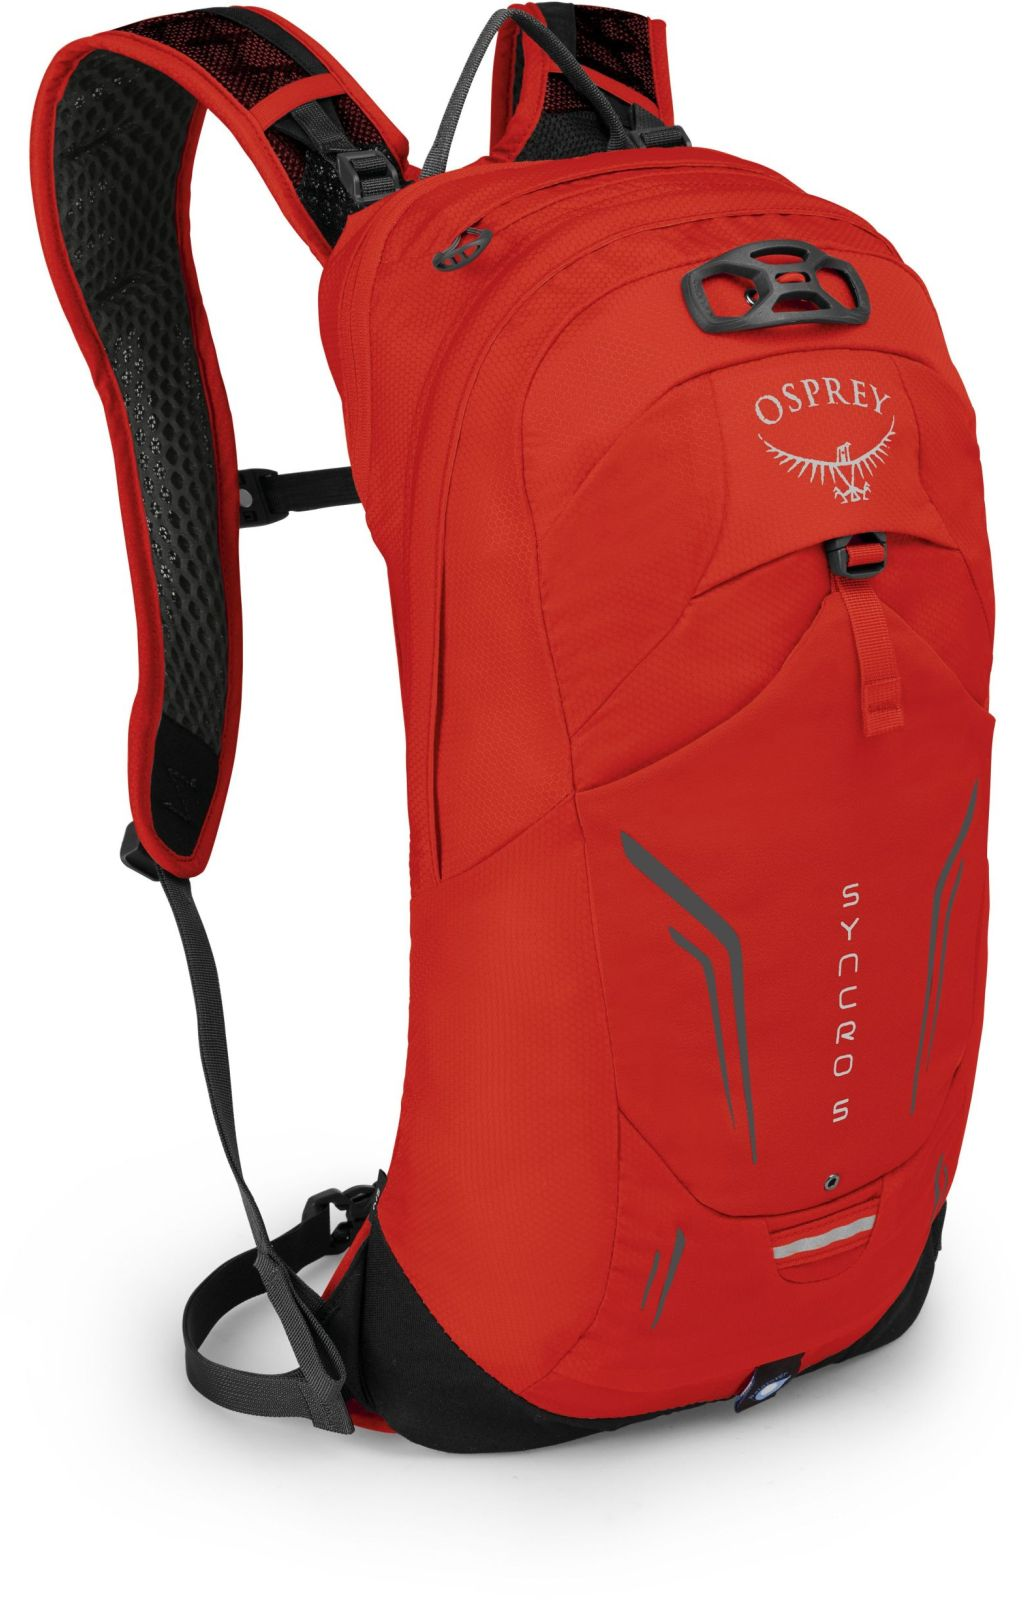 Osprey Syncro 5 - firebelly red uni